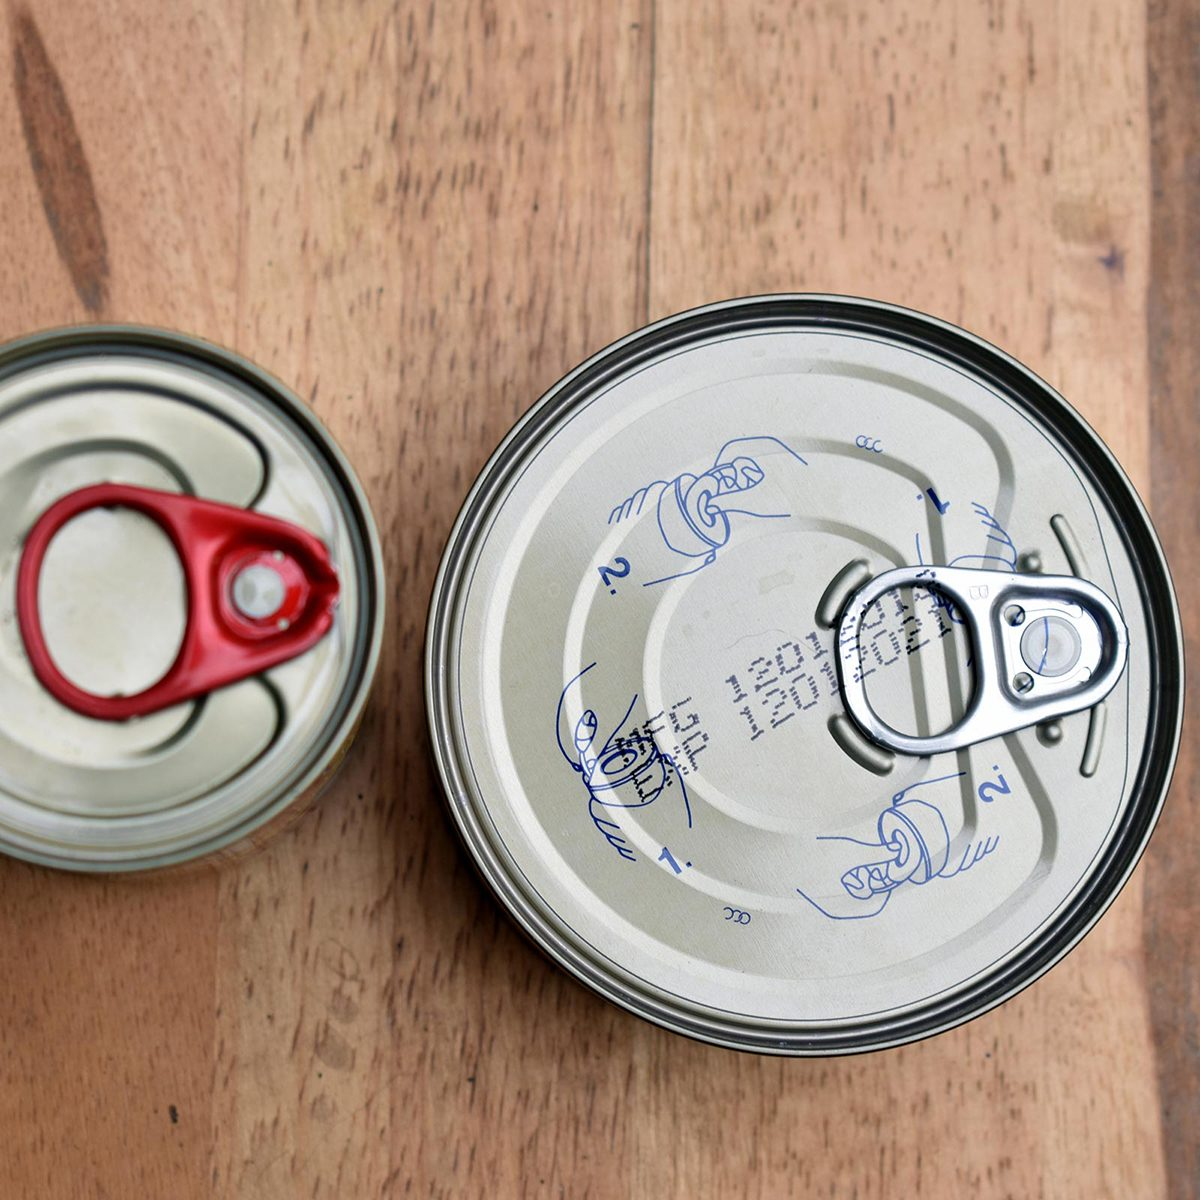 Sell-by date on can